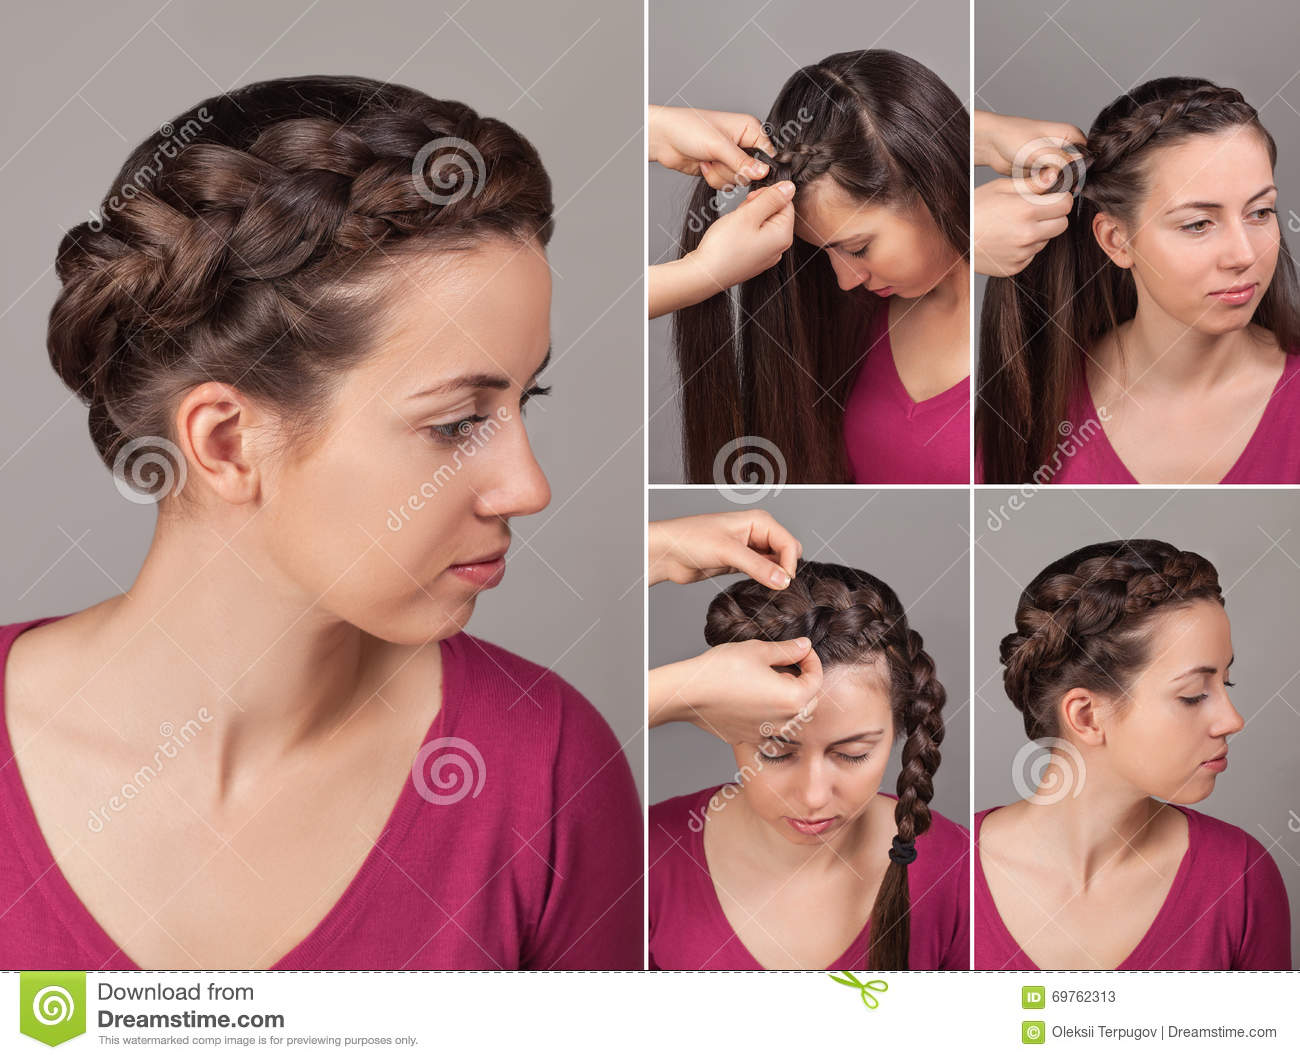 Simple Braid Hairstyle Tutorial Stock Image Image Of Fashion